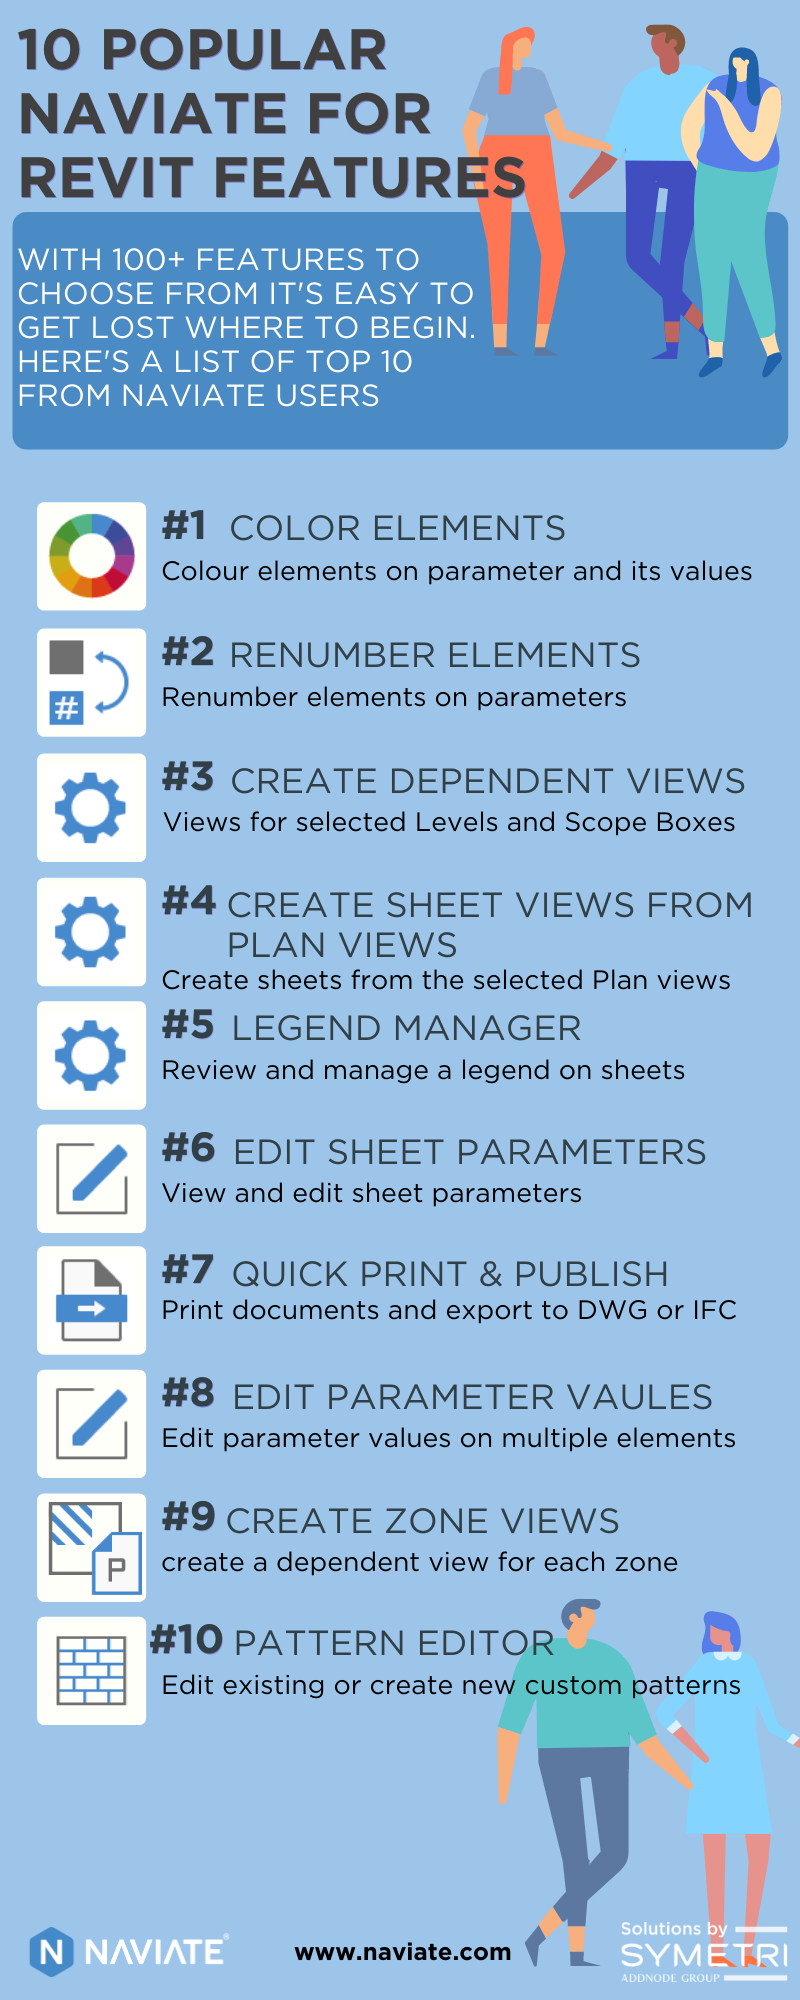 10 popular Naviate Revit features infographic NEW